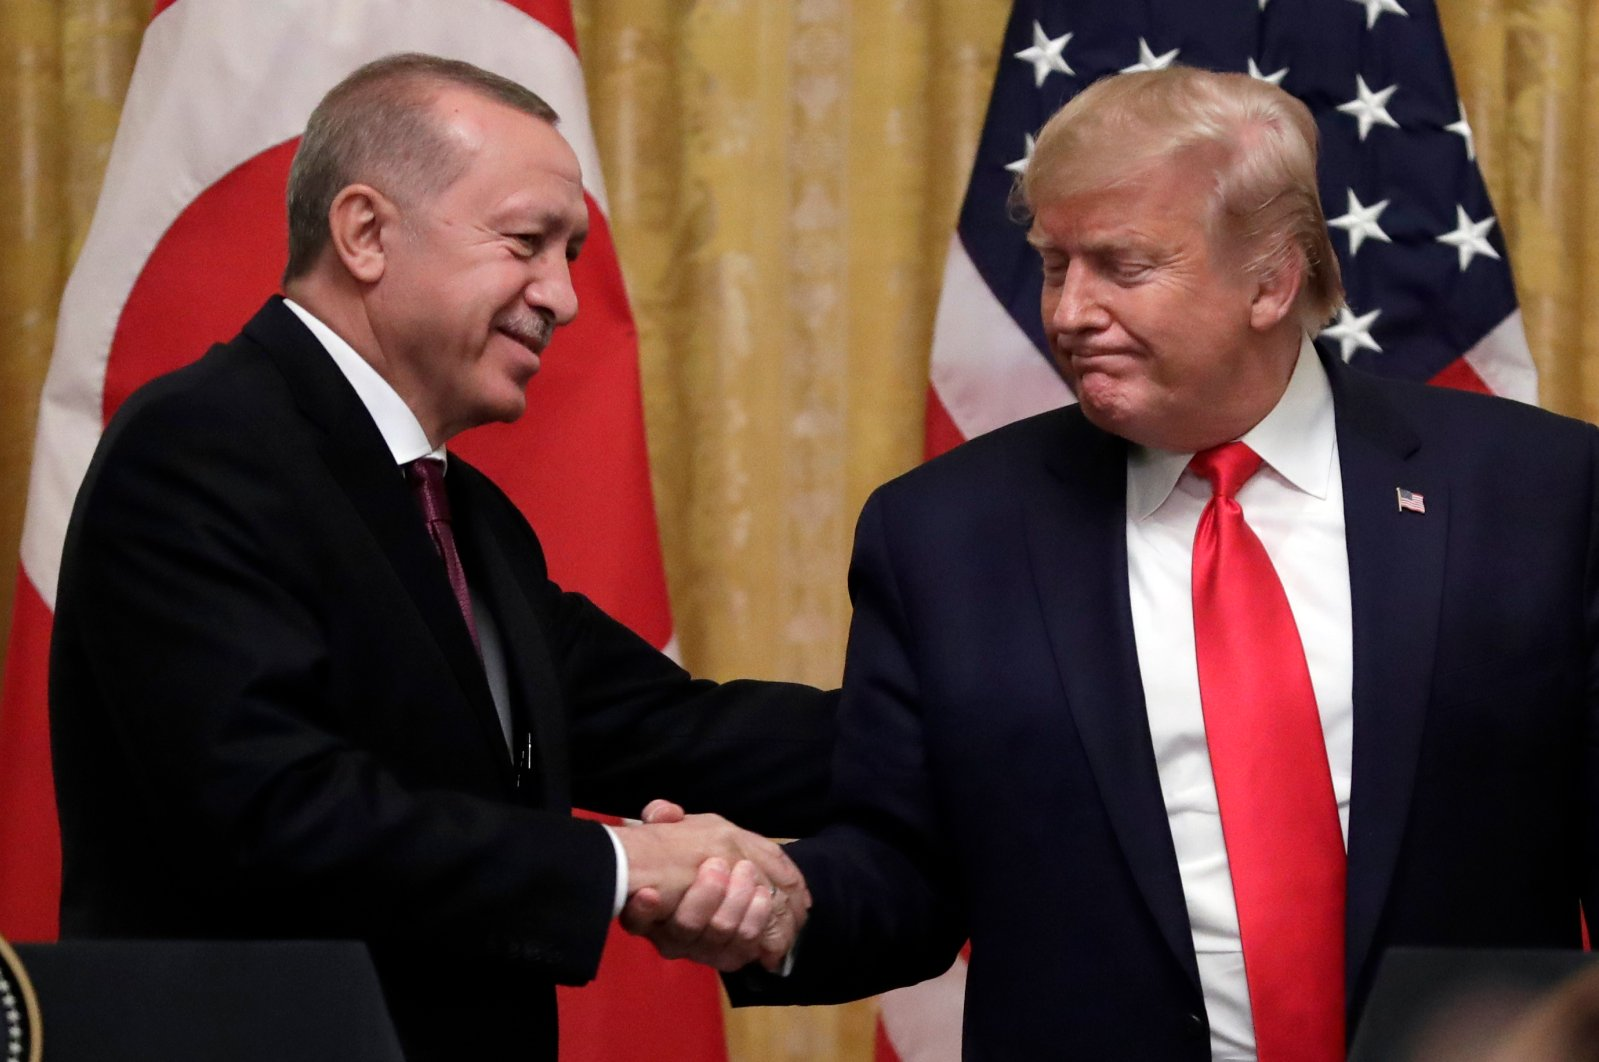 President Recep Tayyip Erdoğan (L) and U.S. President Donald Trump shake hands after a news conference in the East Room of the White House, Washington, Nov. 13, 2019. (AP Photo)